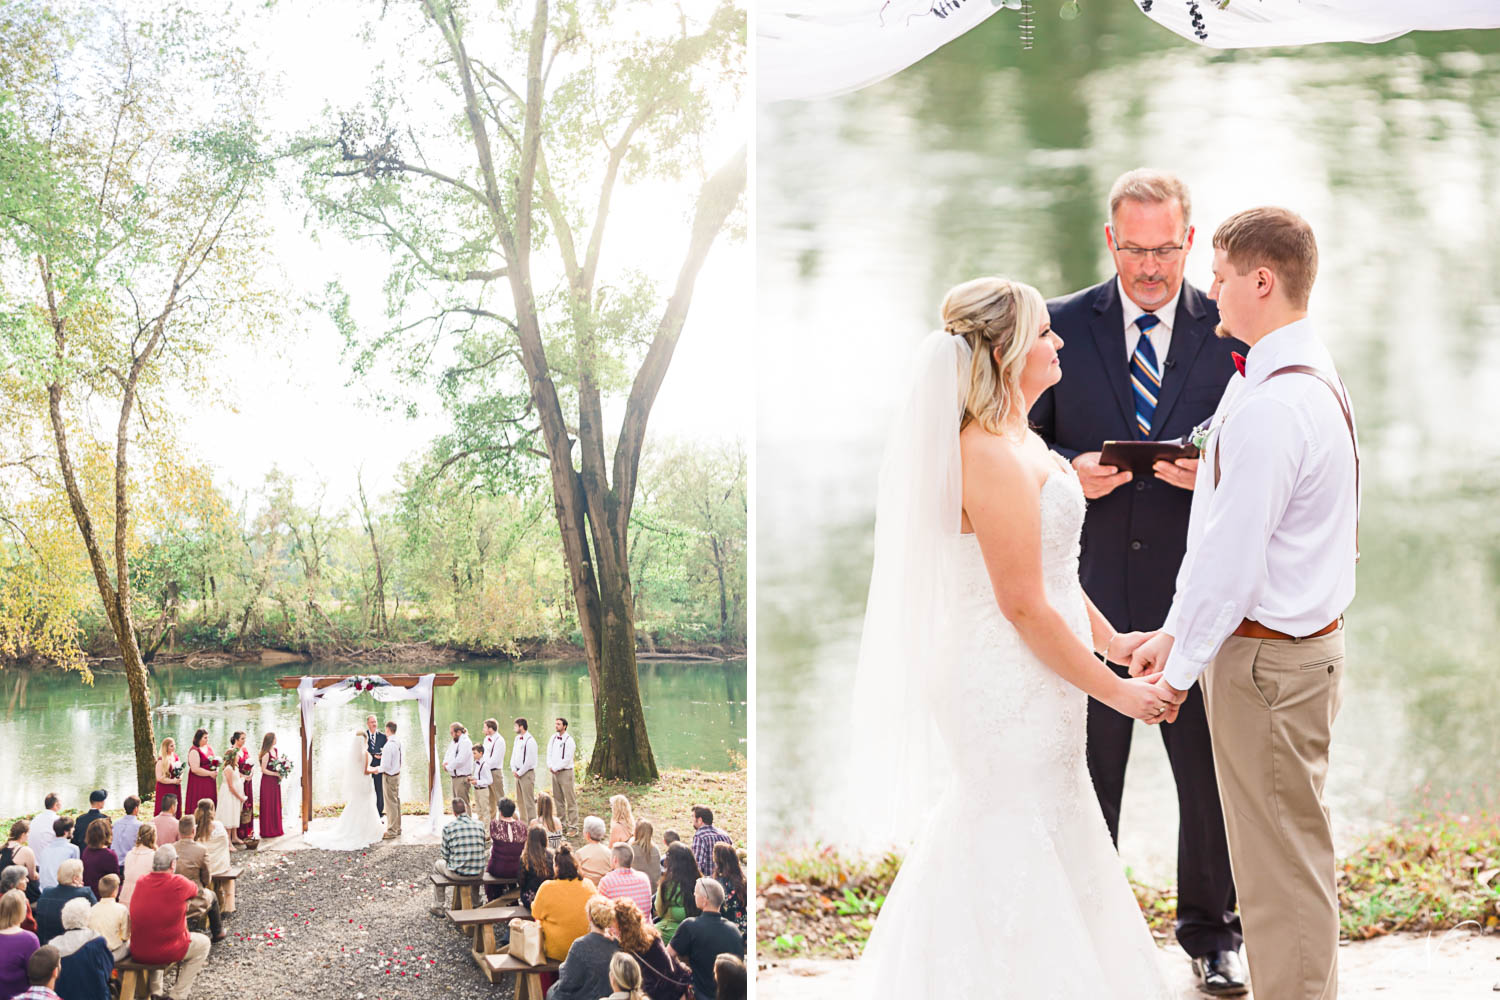 Outdoor Tennessee Overhill Riverside wedding ceremony in Delano TN